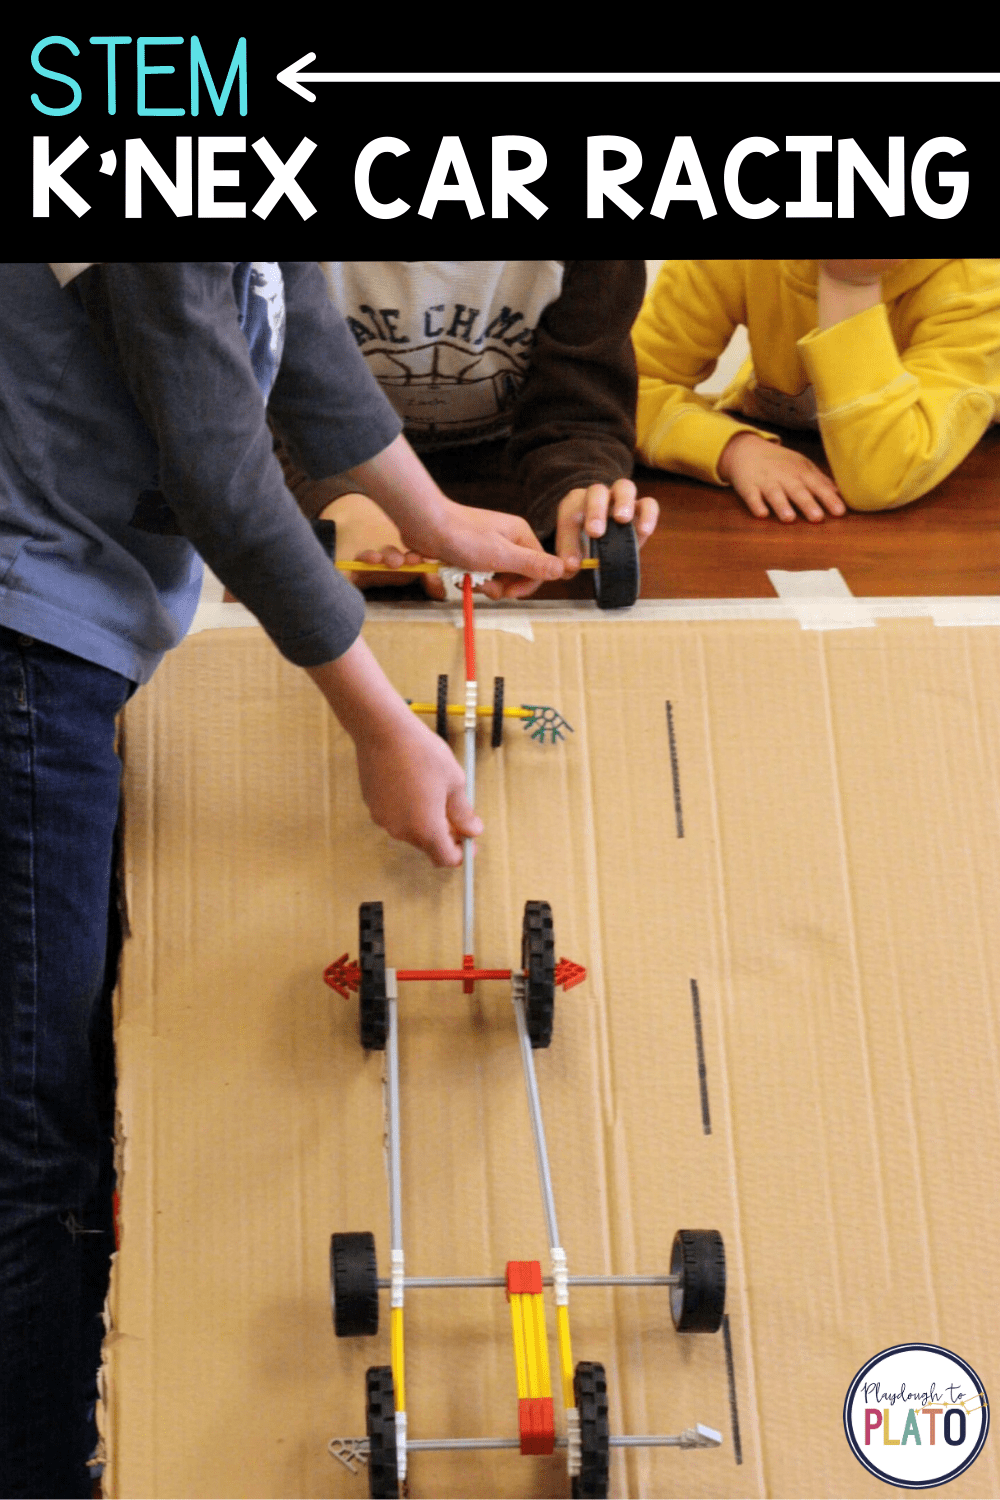 STEM K'nex Car Racing